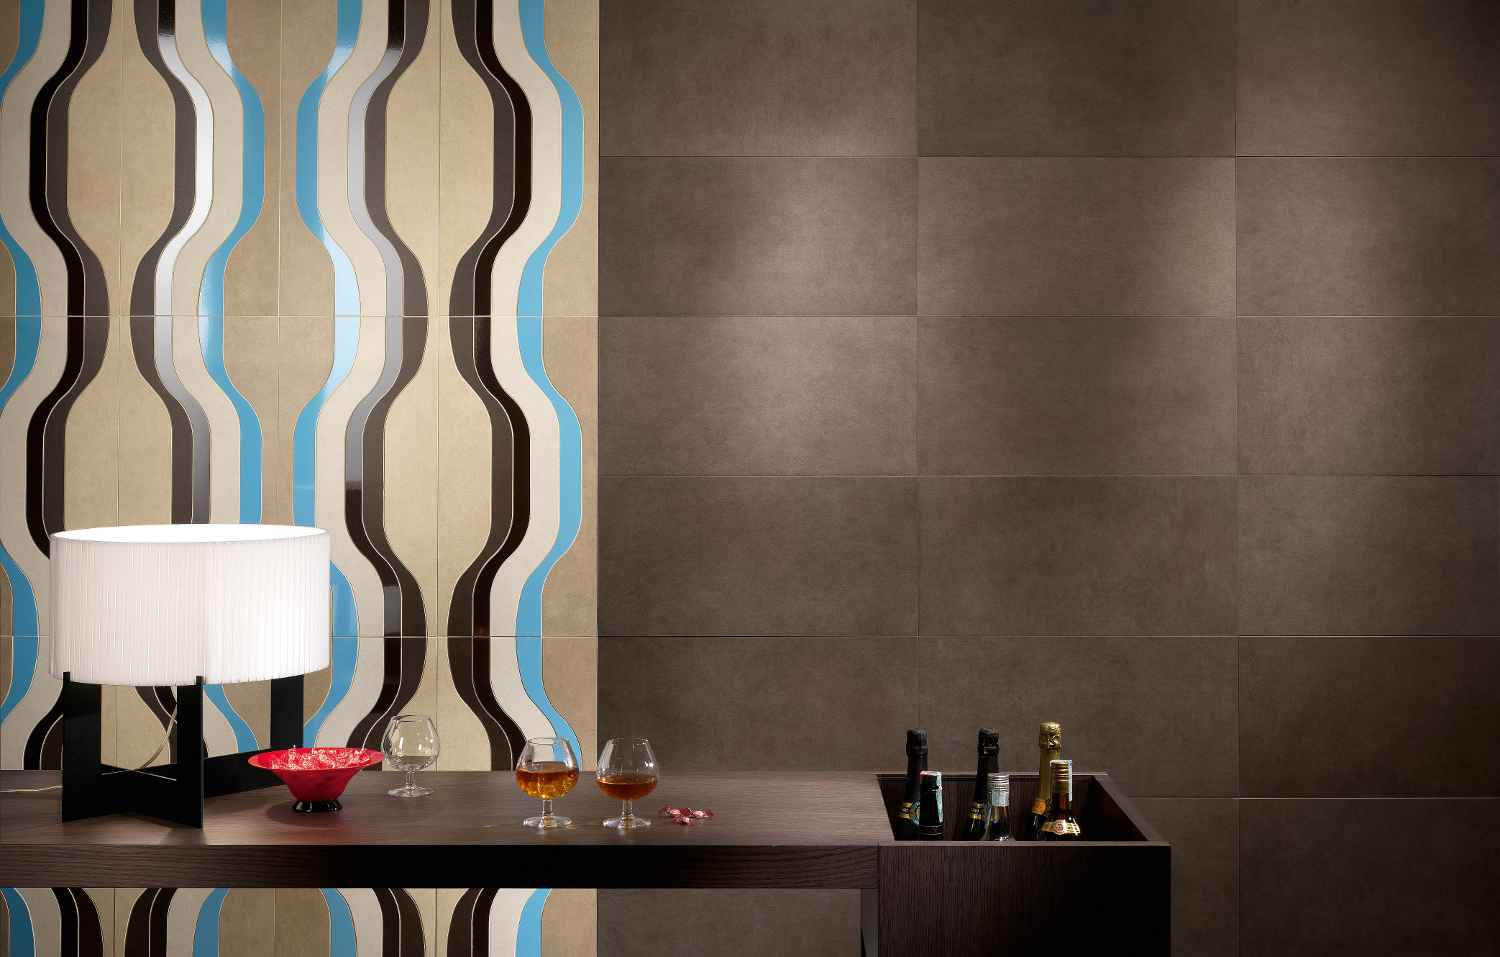 Panaria wall porcelain type tiles in dark brown